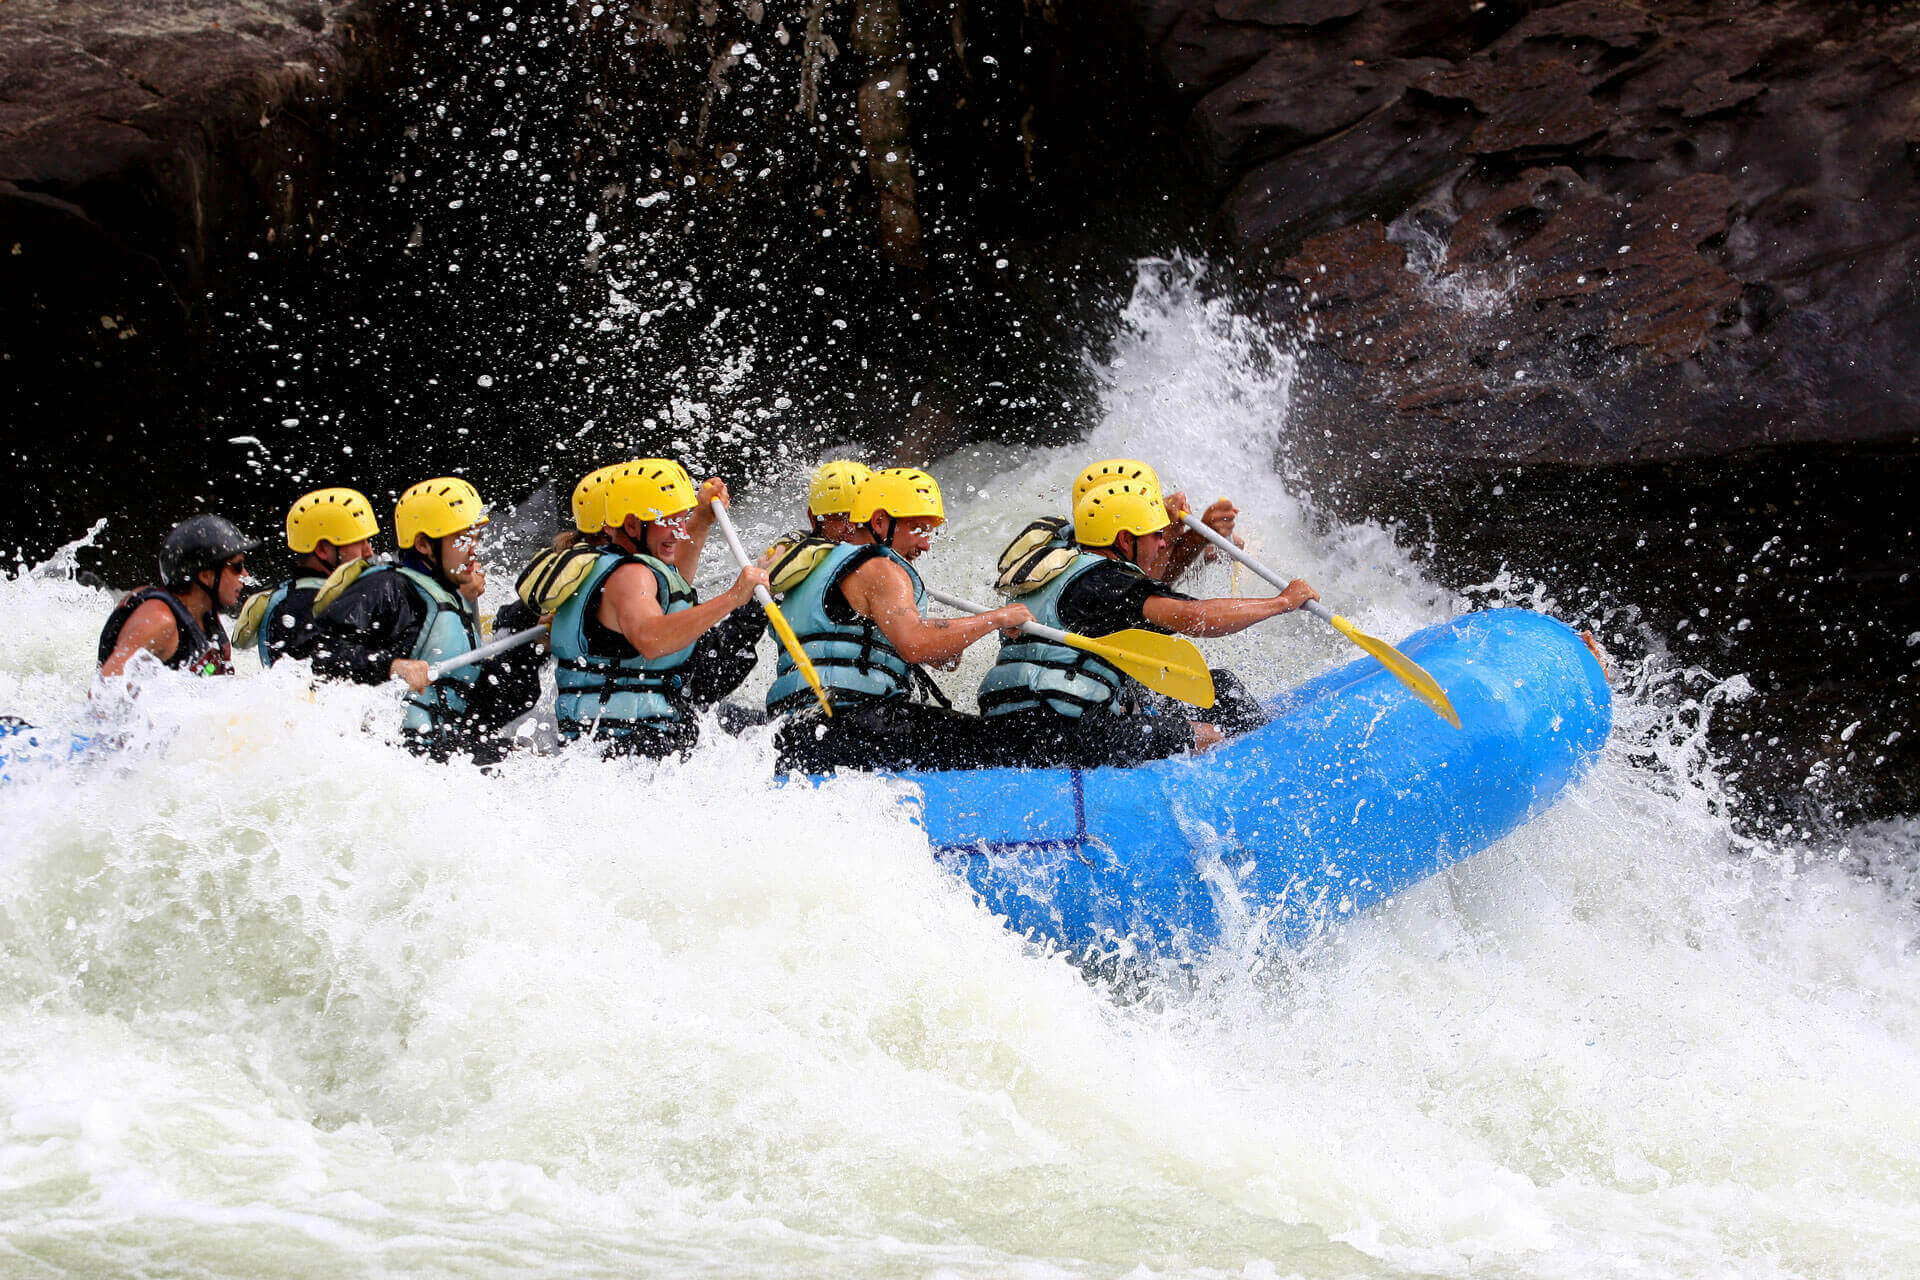 group of people on blue raft paddling through rapids on river